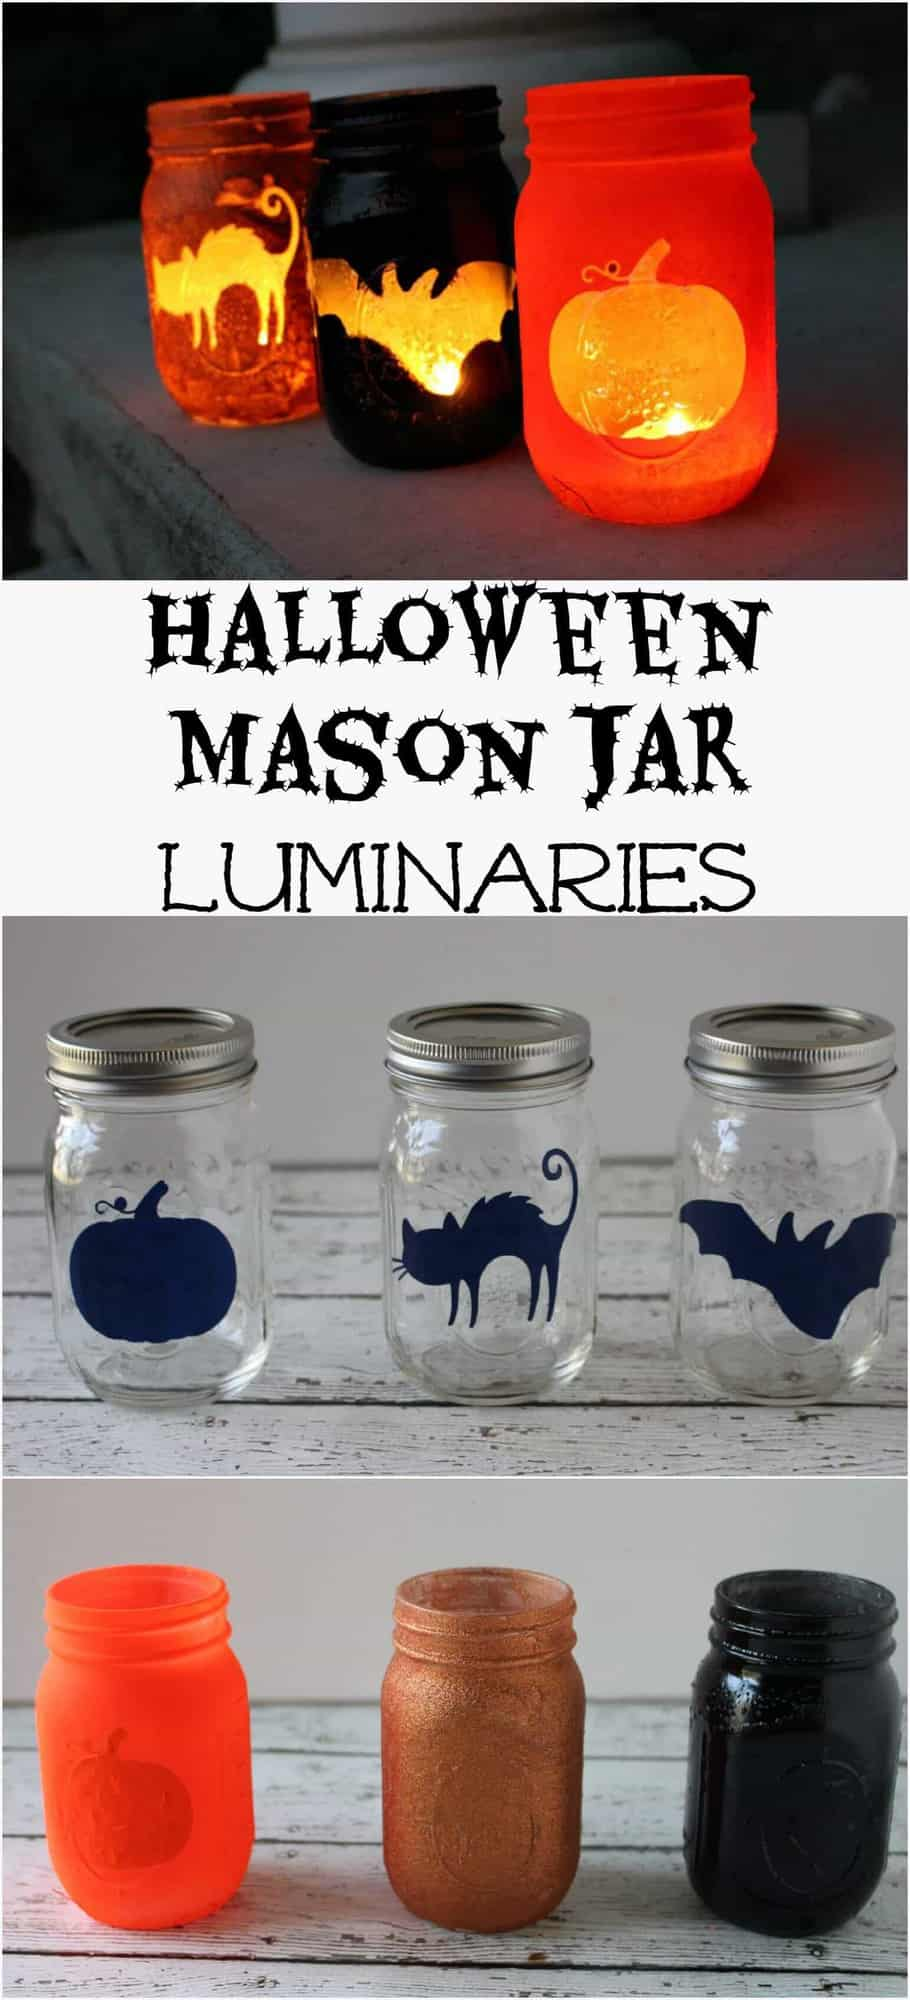 Halloween Mason Jar Luminaries Princess Pinky Girl